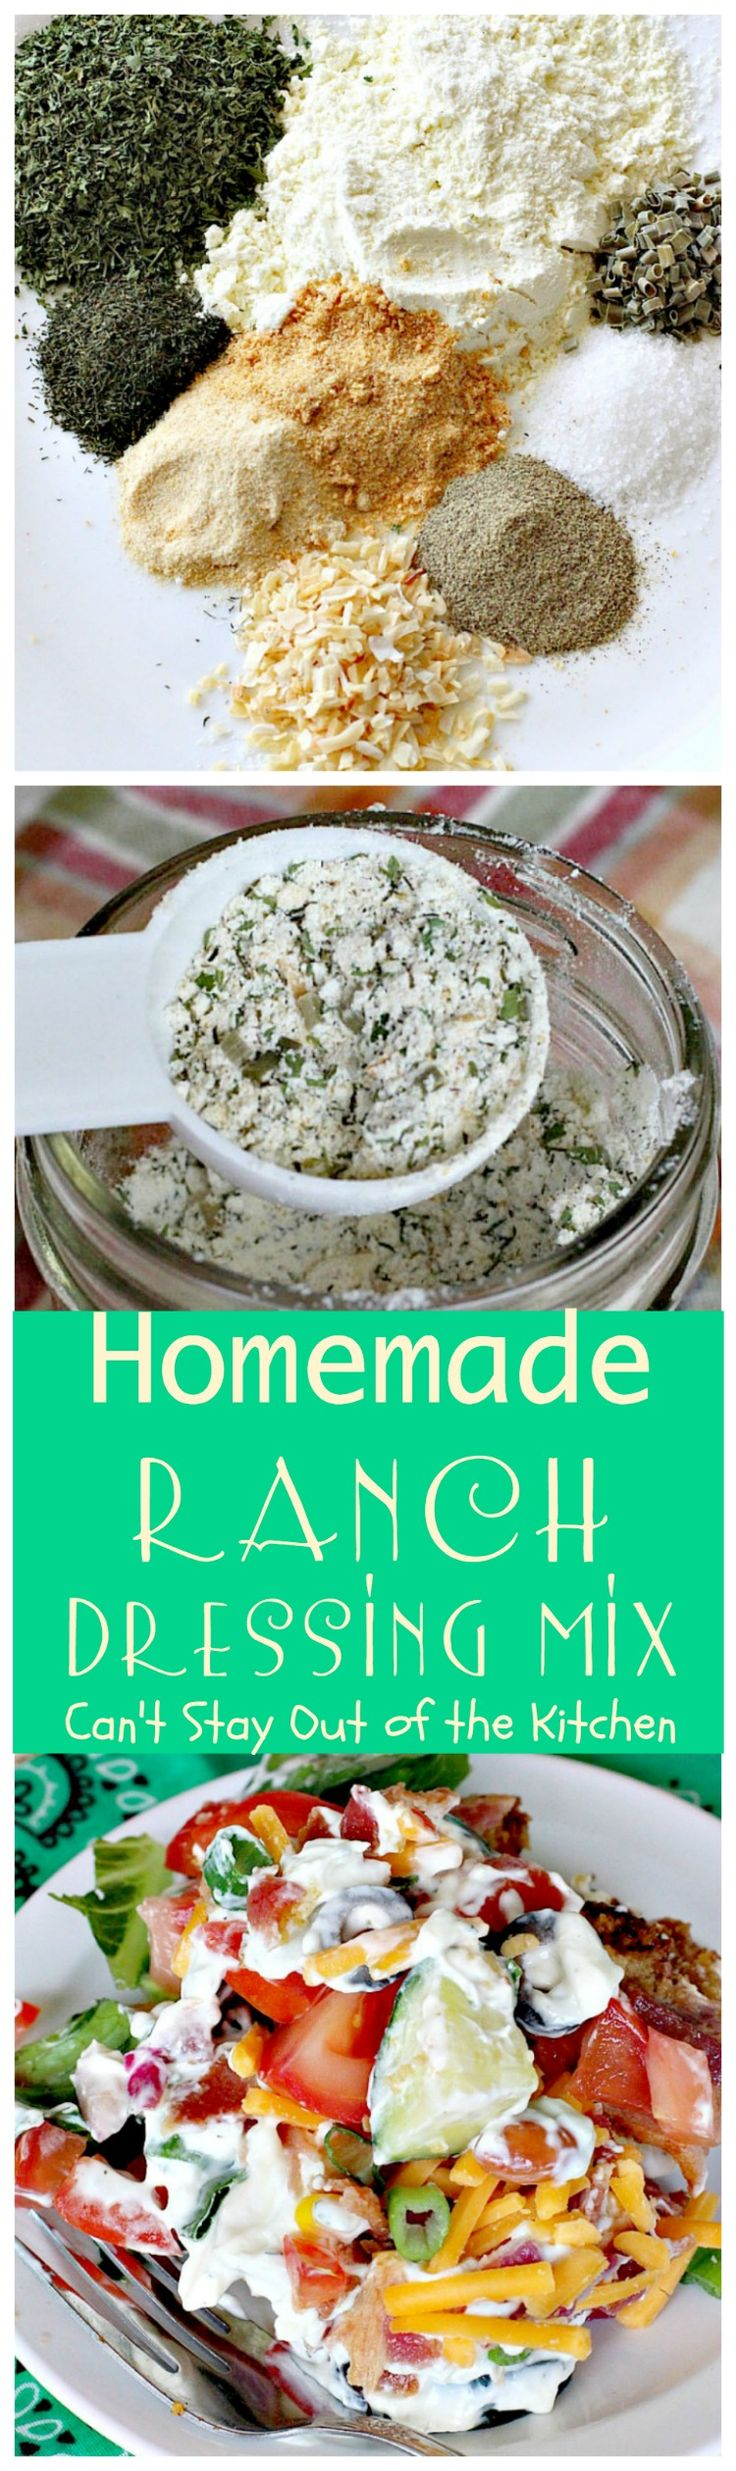 Homemade Ranch Dressing Mix | Can't Stay Out of the Kitchen | homemade #RanchDressingMix that's incredibly tasty. This one is healthy, #Glutenfree & with no preservatives. Great from-scratch recipe to serve on your favorite #salad.